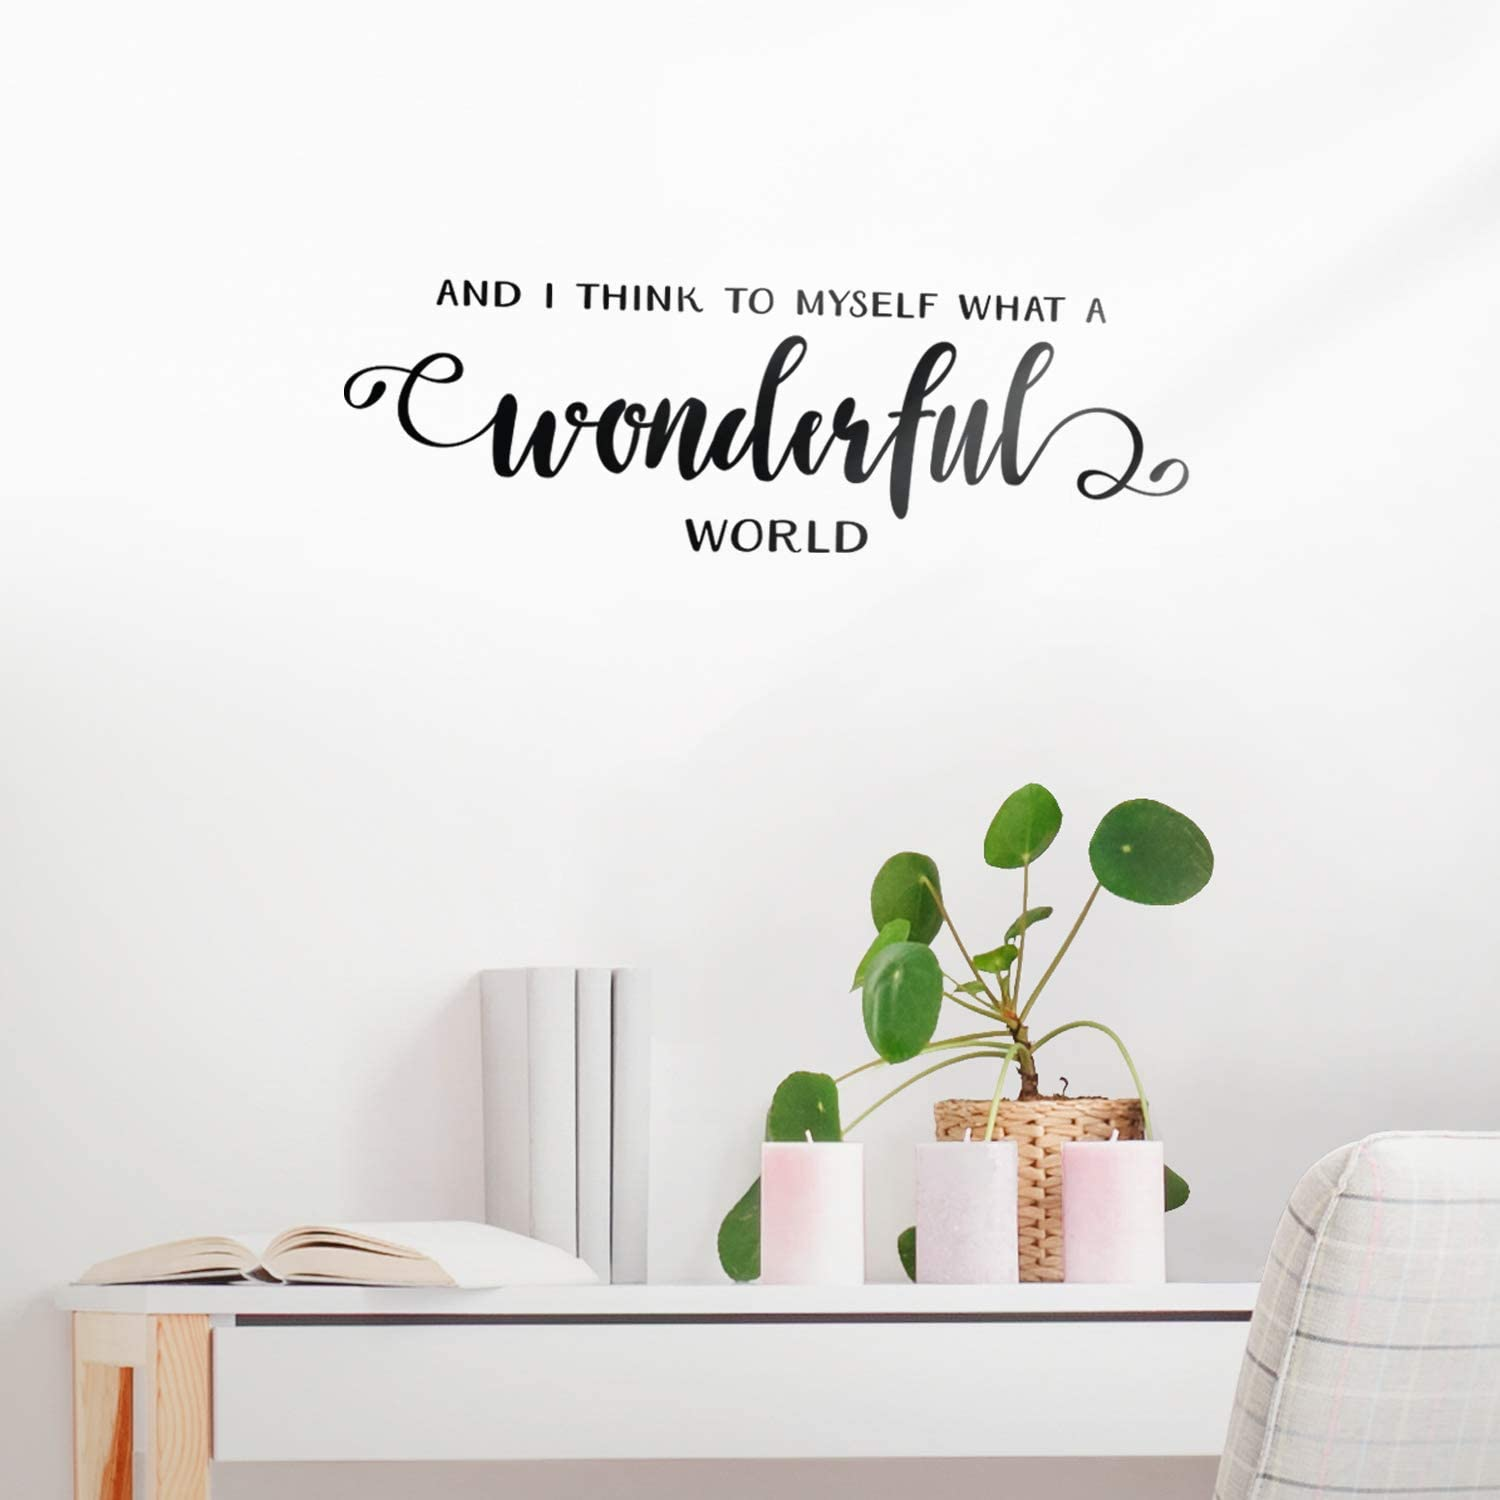 Decor Wall Quote /'What you think you create.../' Wall Sticker Adhesive Decal